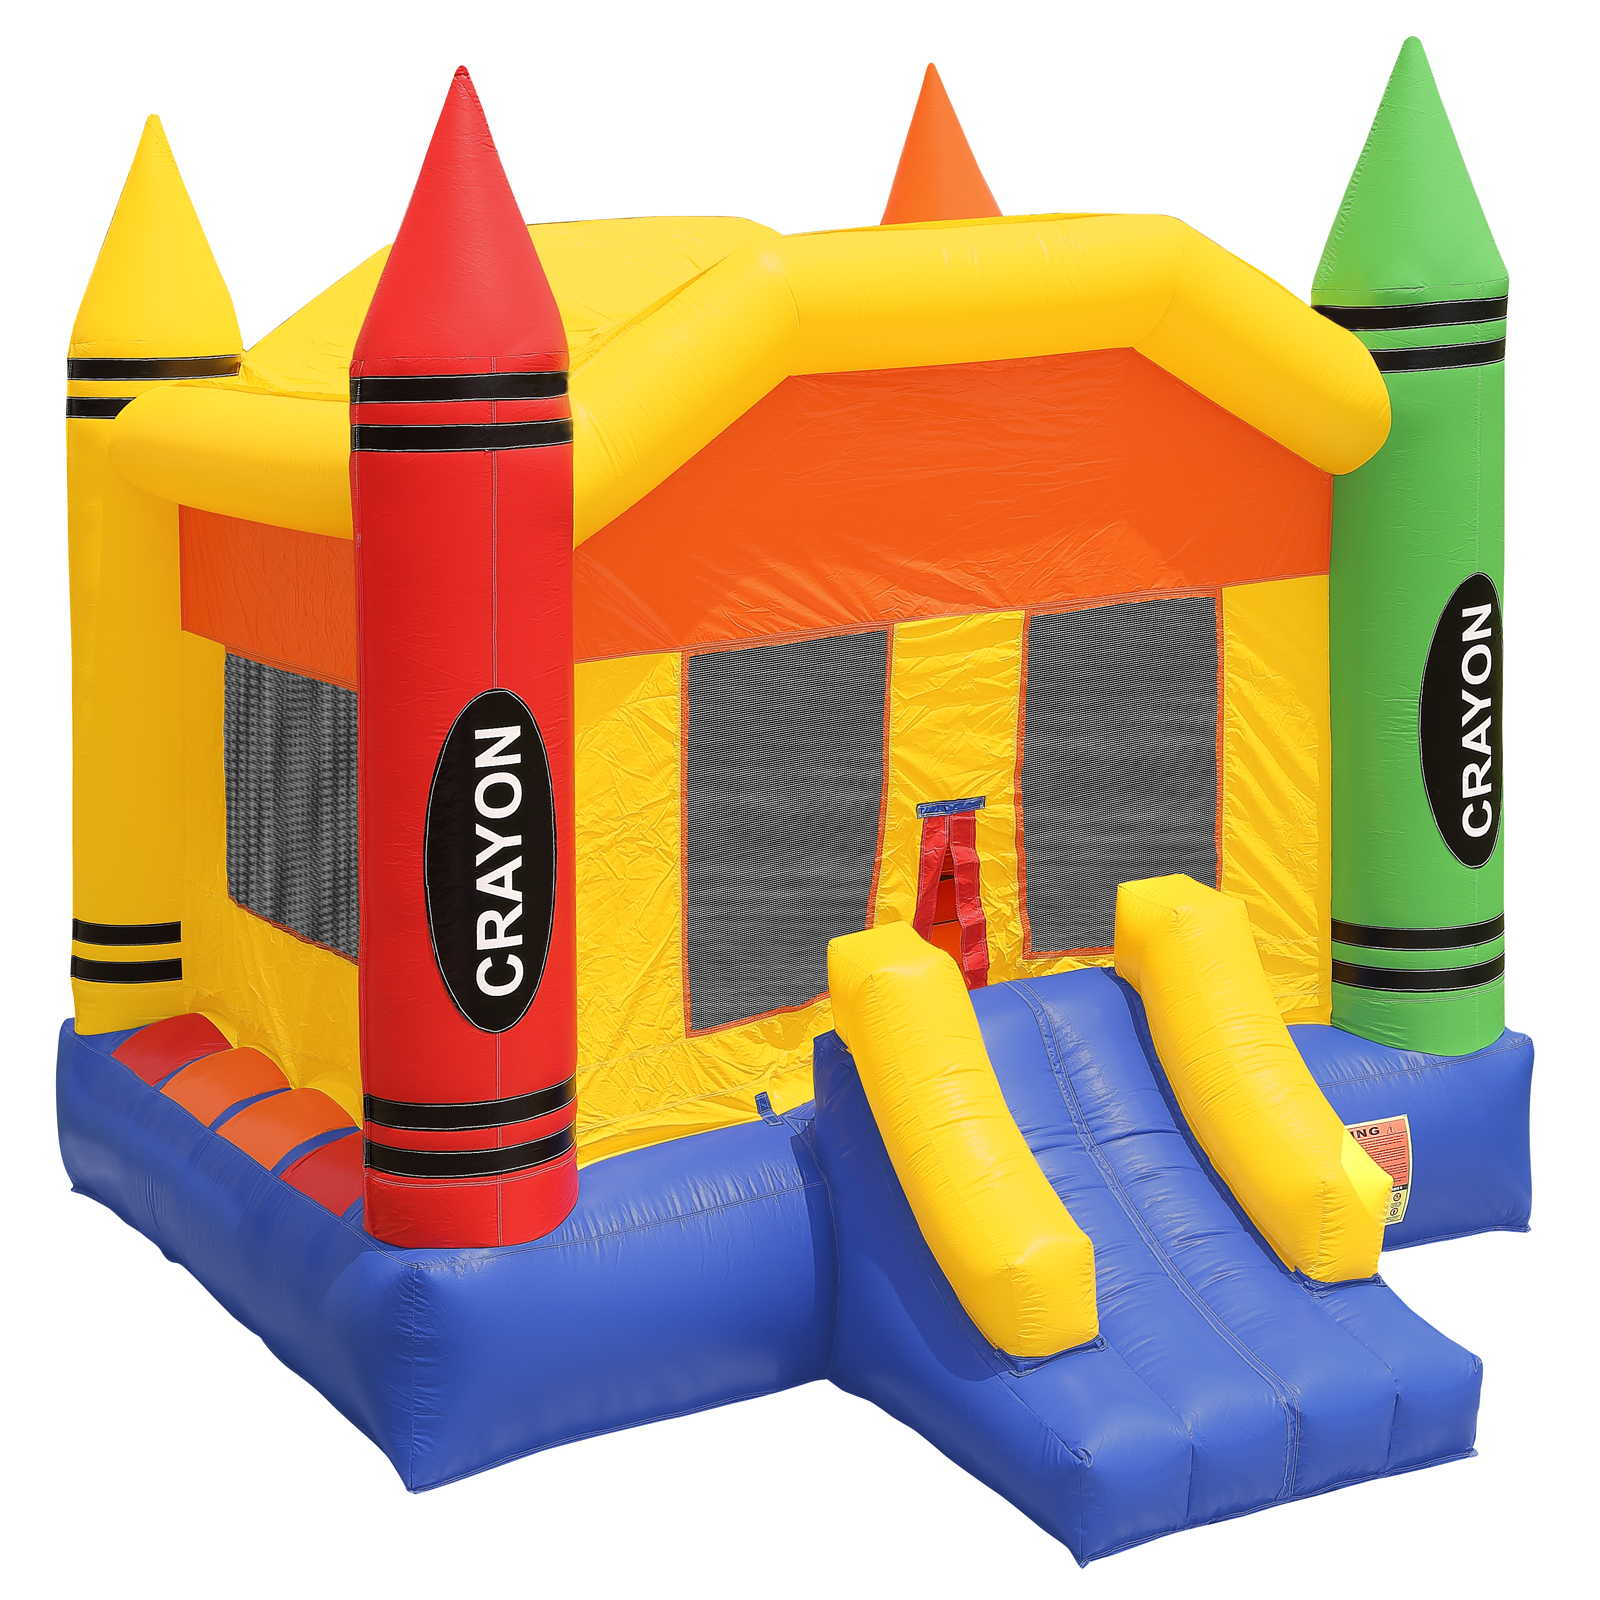 Inflatable HQ Commercial Grade Bounce House 100% PVC Crayon Castle Jumper Inflatable Only